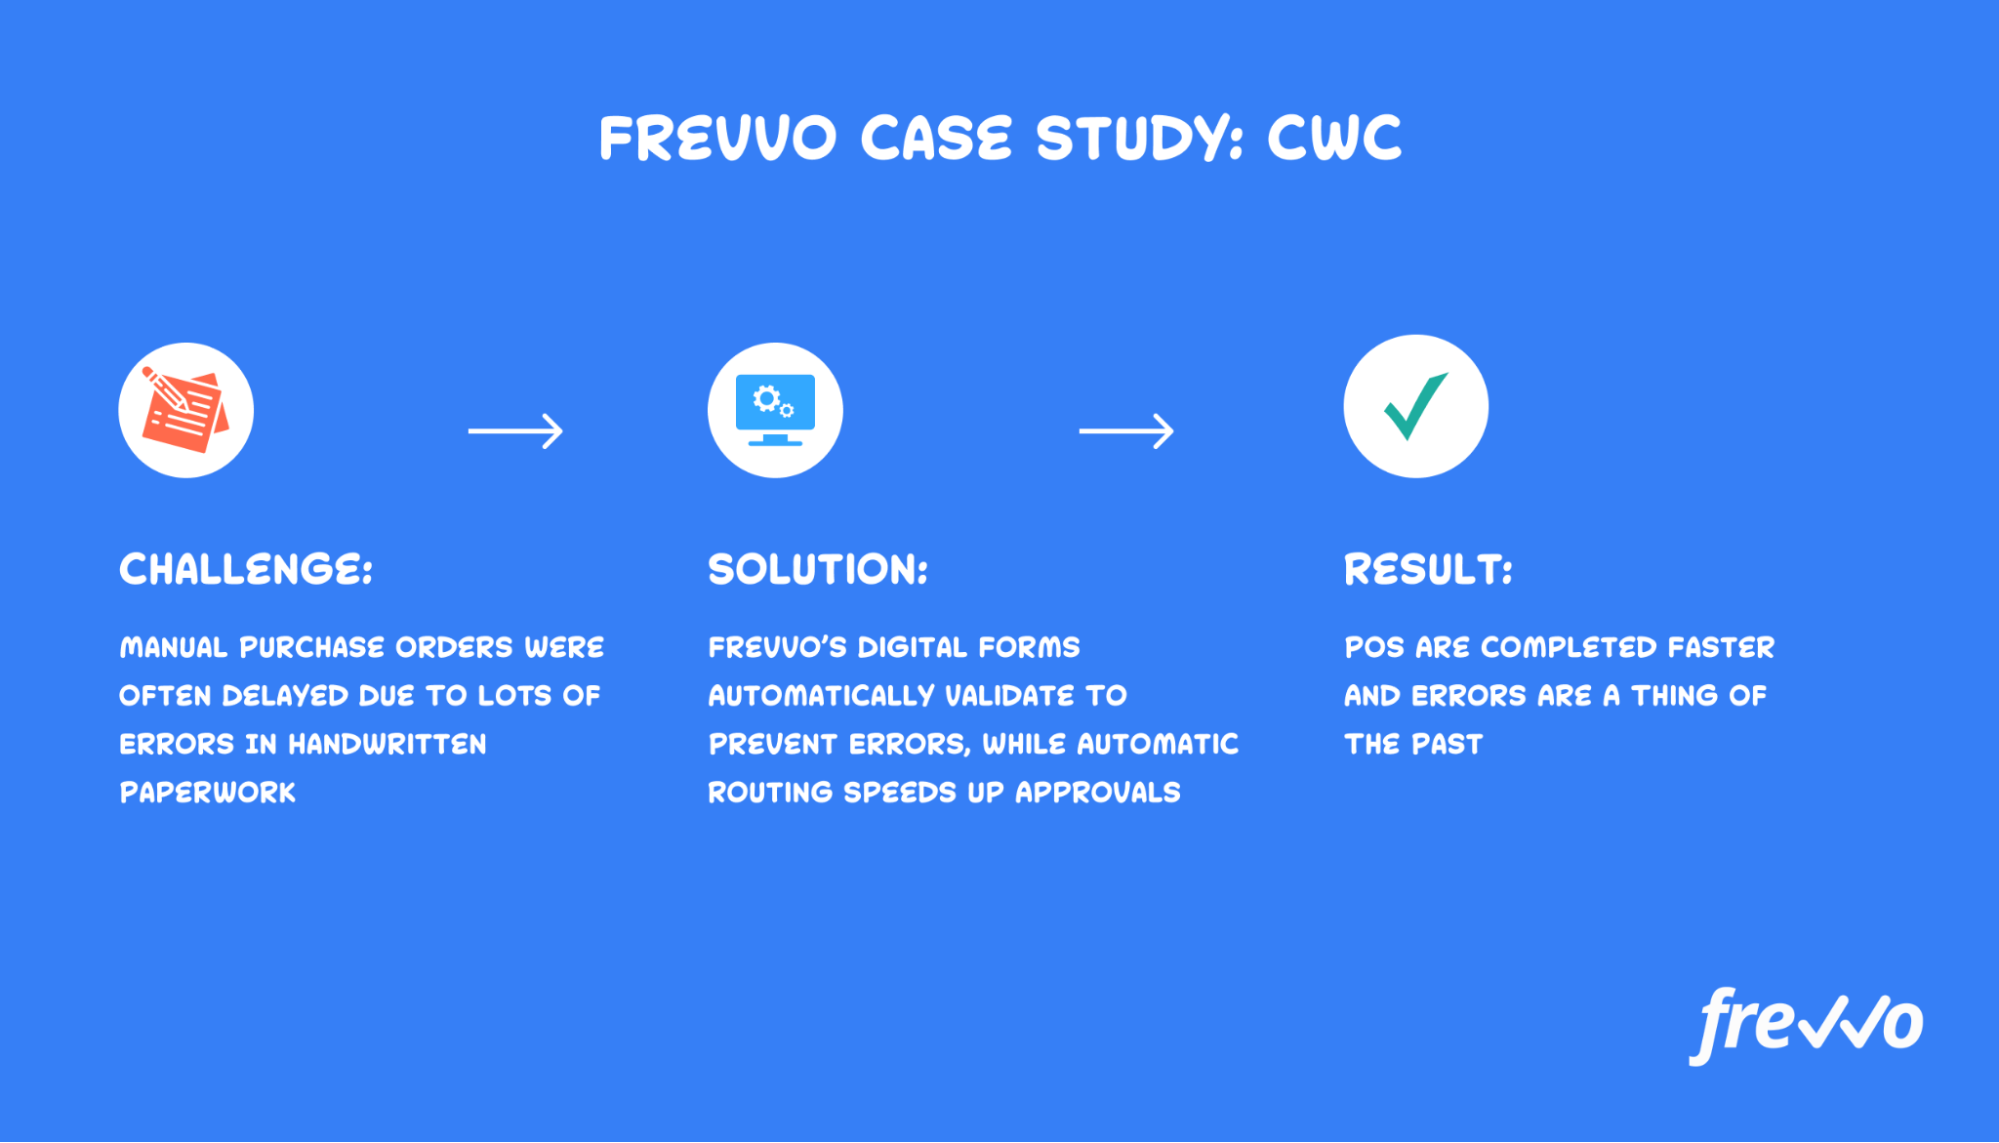 case study of CWC using frevvo